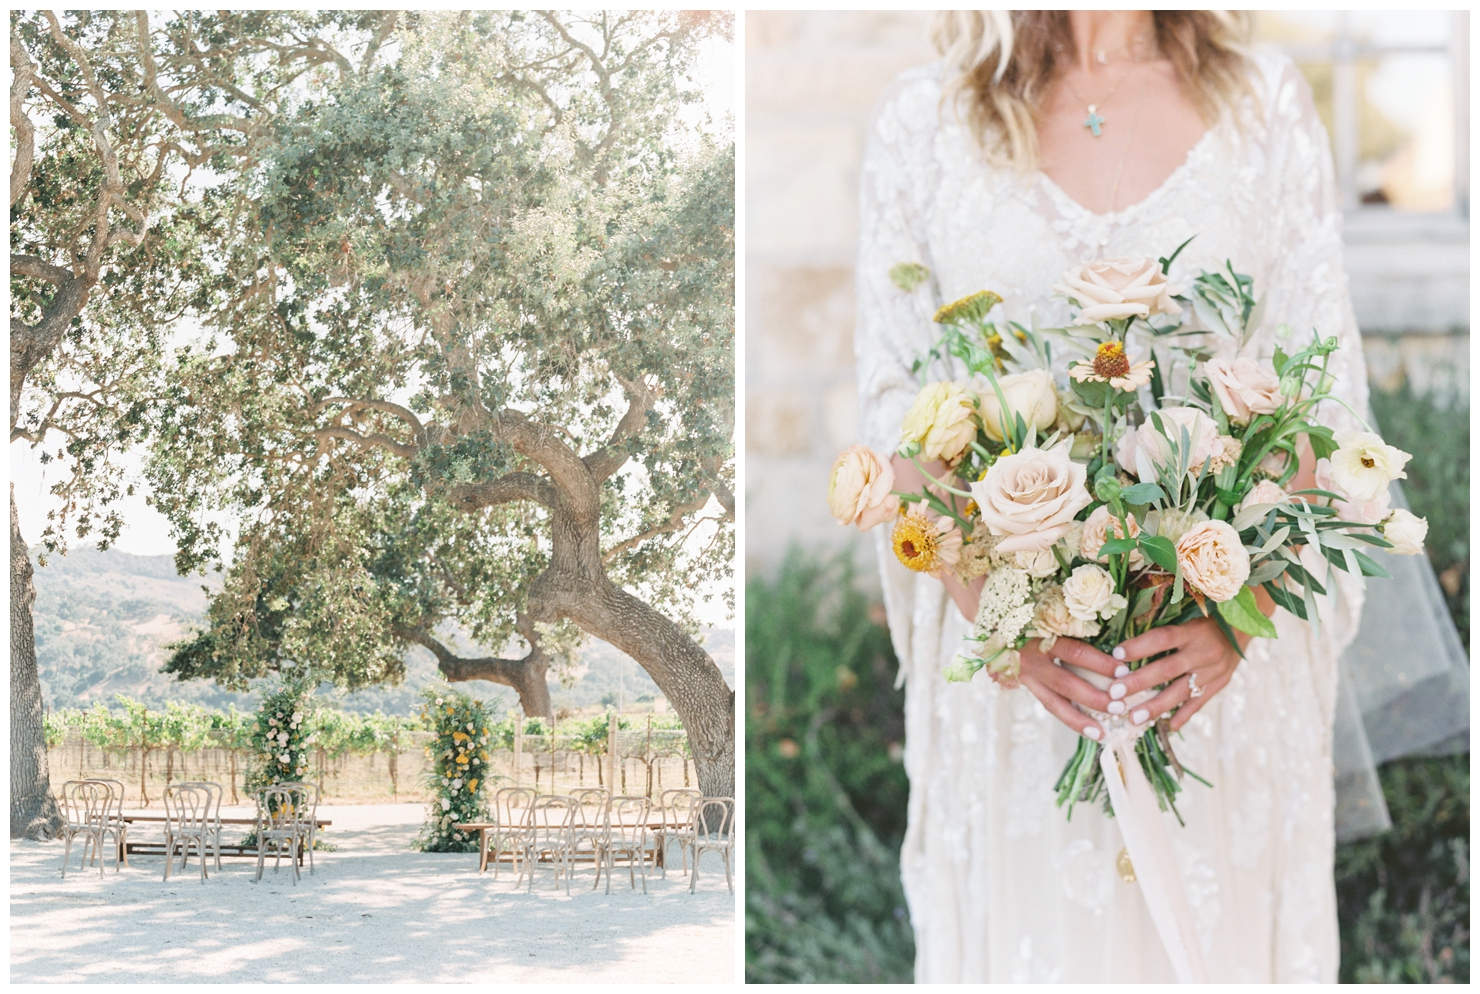 Stylish And Summery Wedding At A Winery In Greece Bridal Bouquet